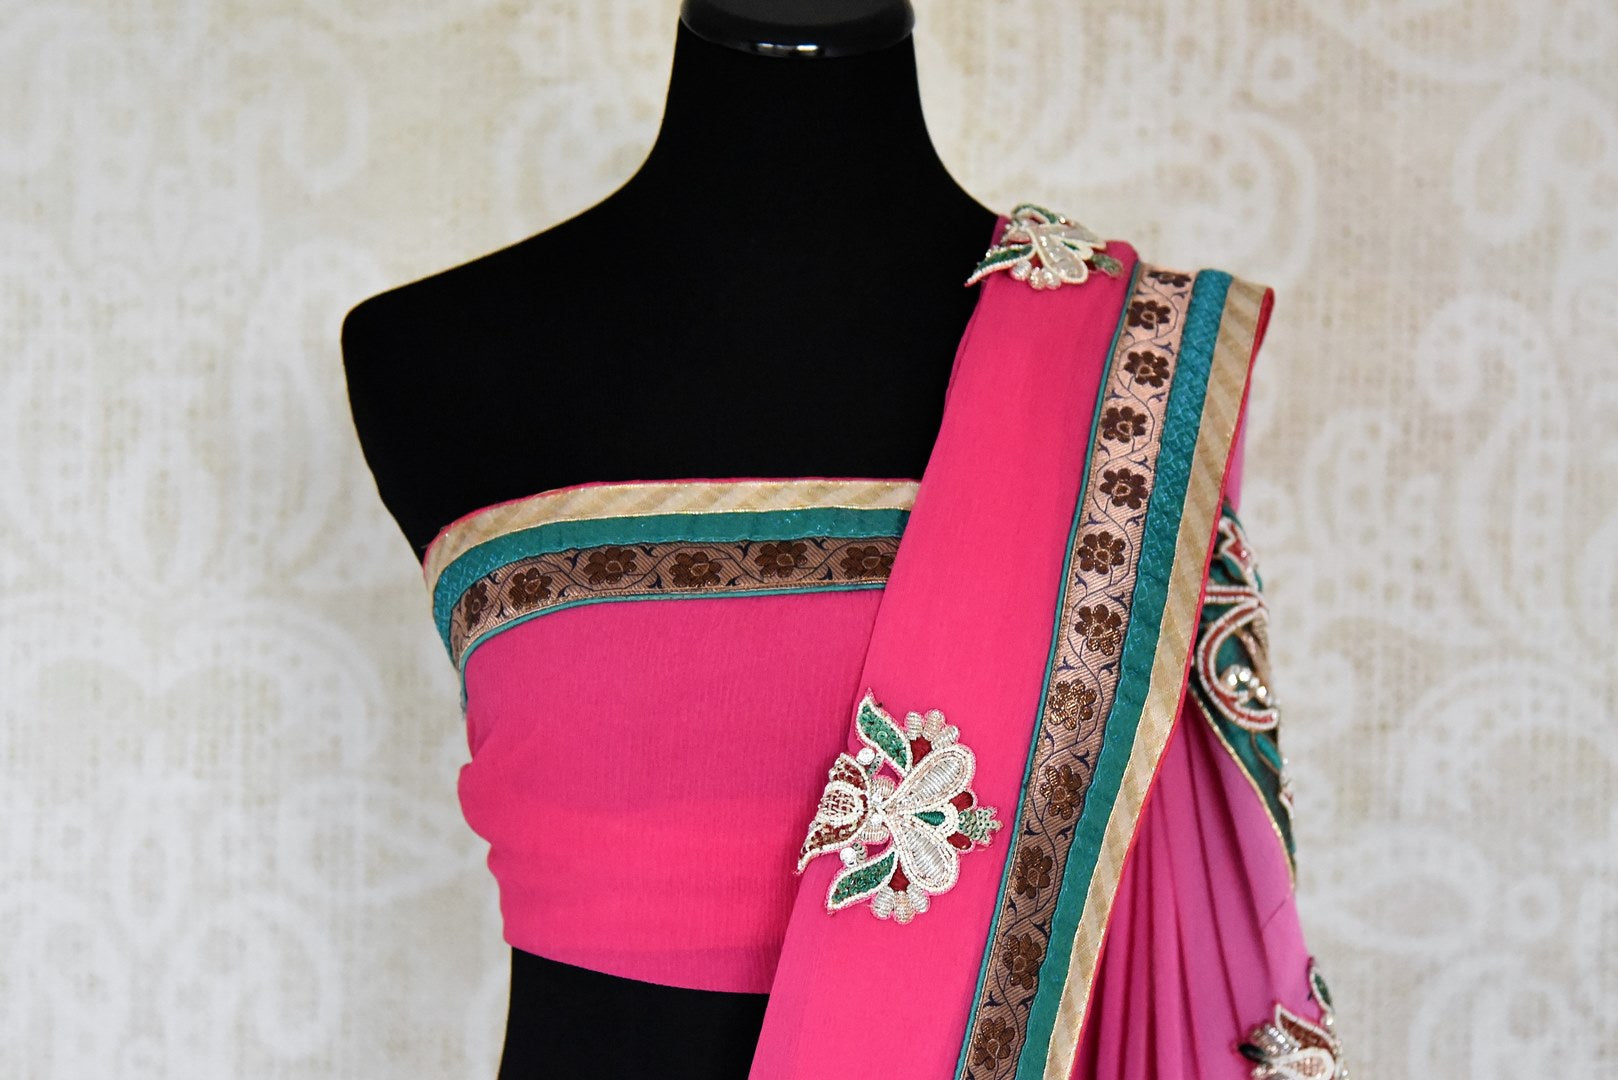 Buy pink embroidered fancy chiffon saree online in USA from Pure Elegance. Let your ethnic style be one of a kind with an exquisite variety of Indian handloom sarees, pure silk sarees, designer sarees from our exclusive fashion store in USA.-blouse pallu